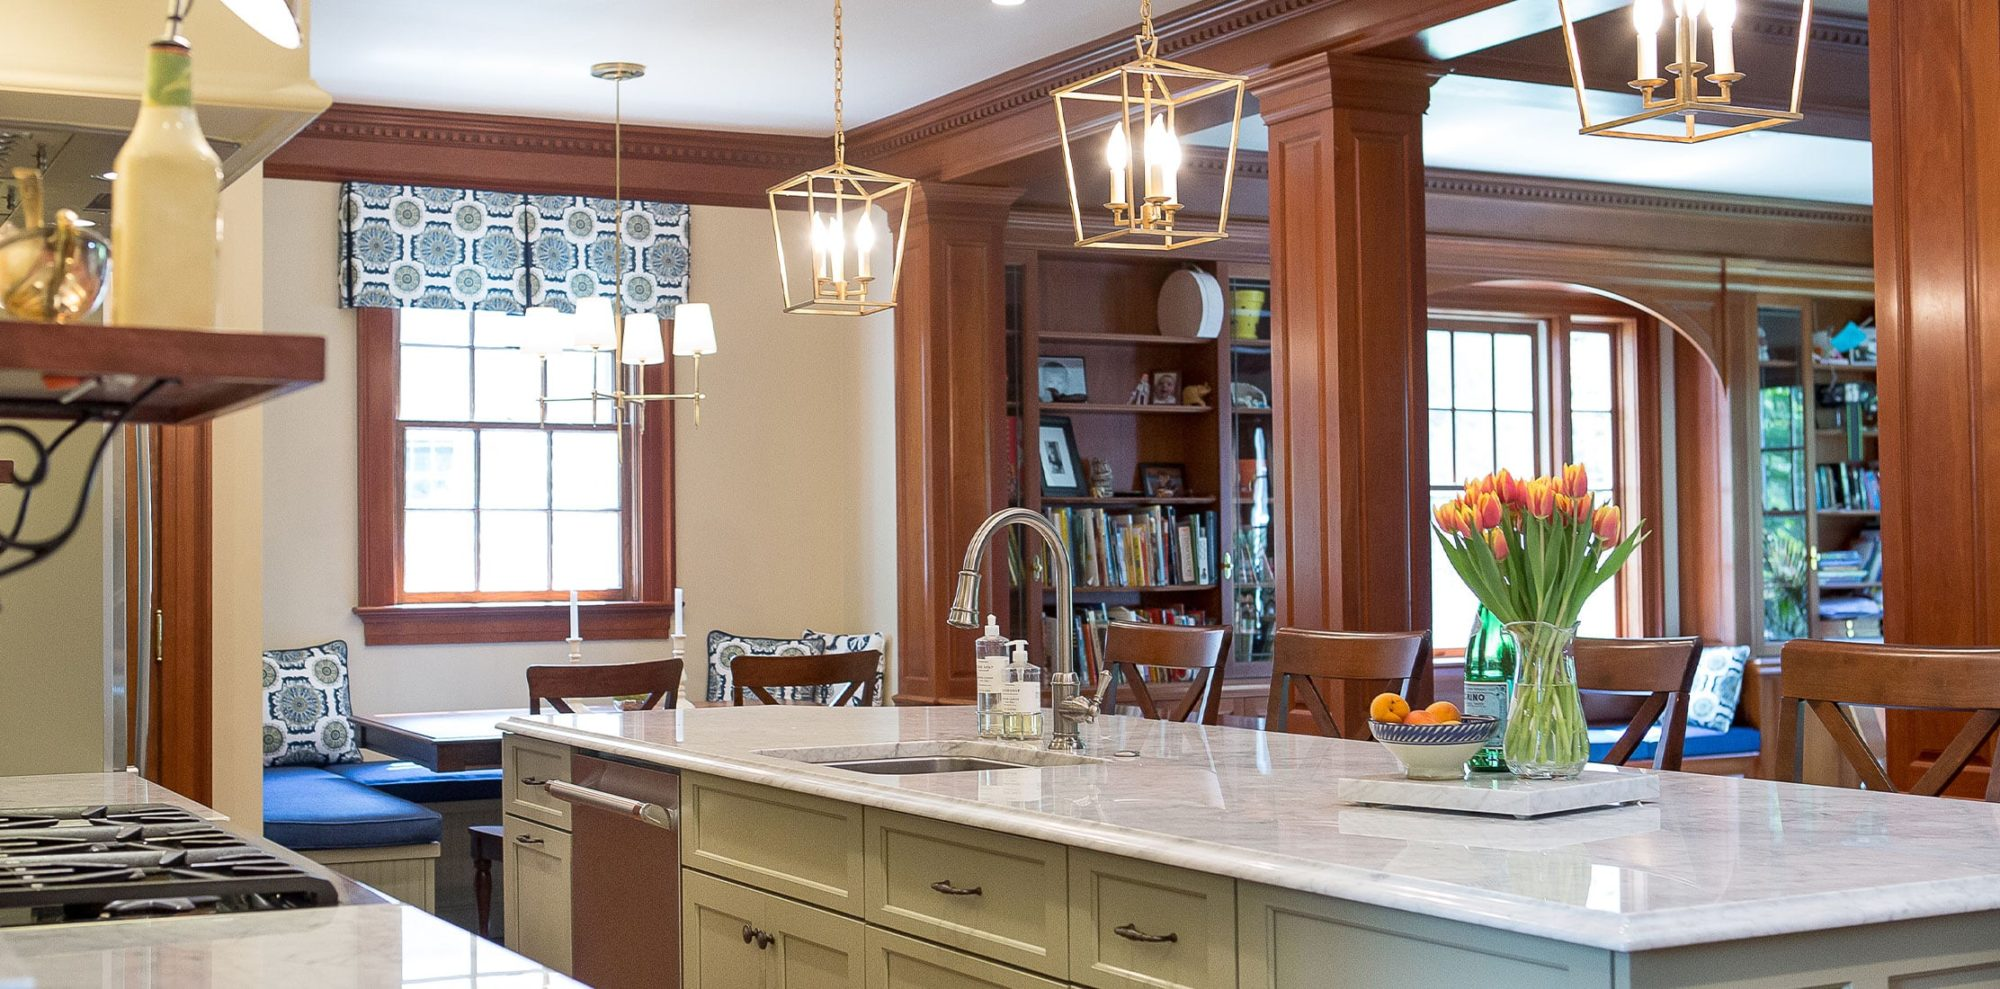 Open concept kitchen with pendant lights